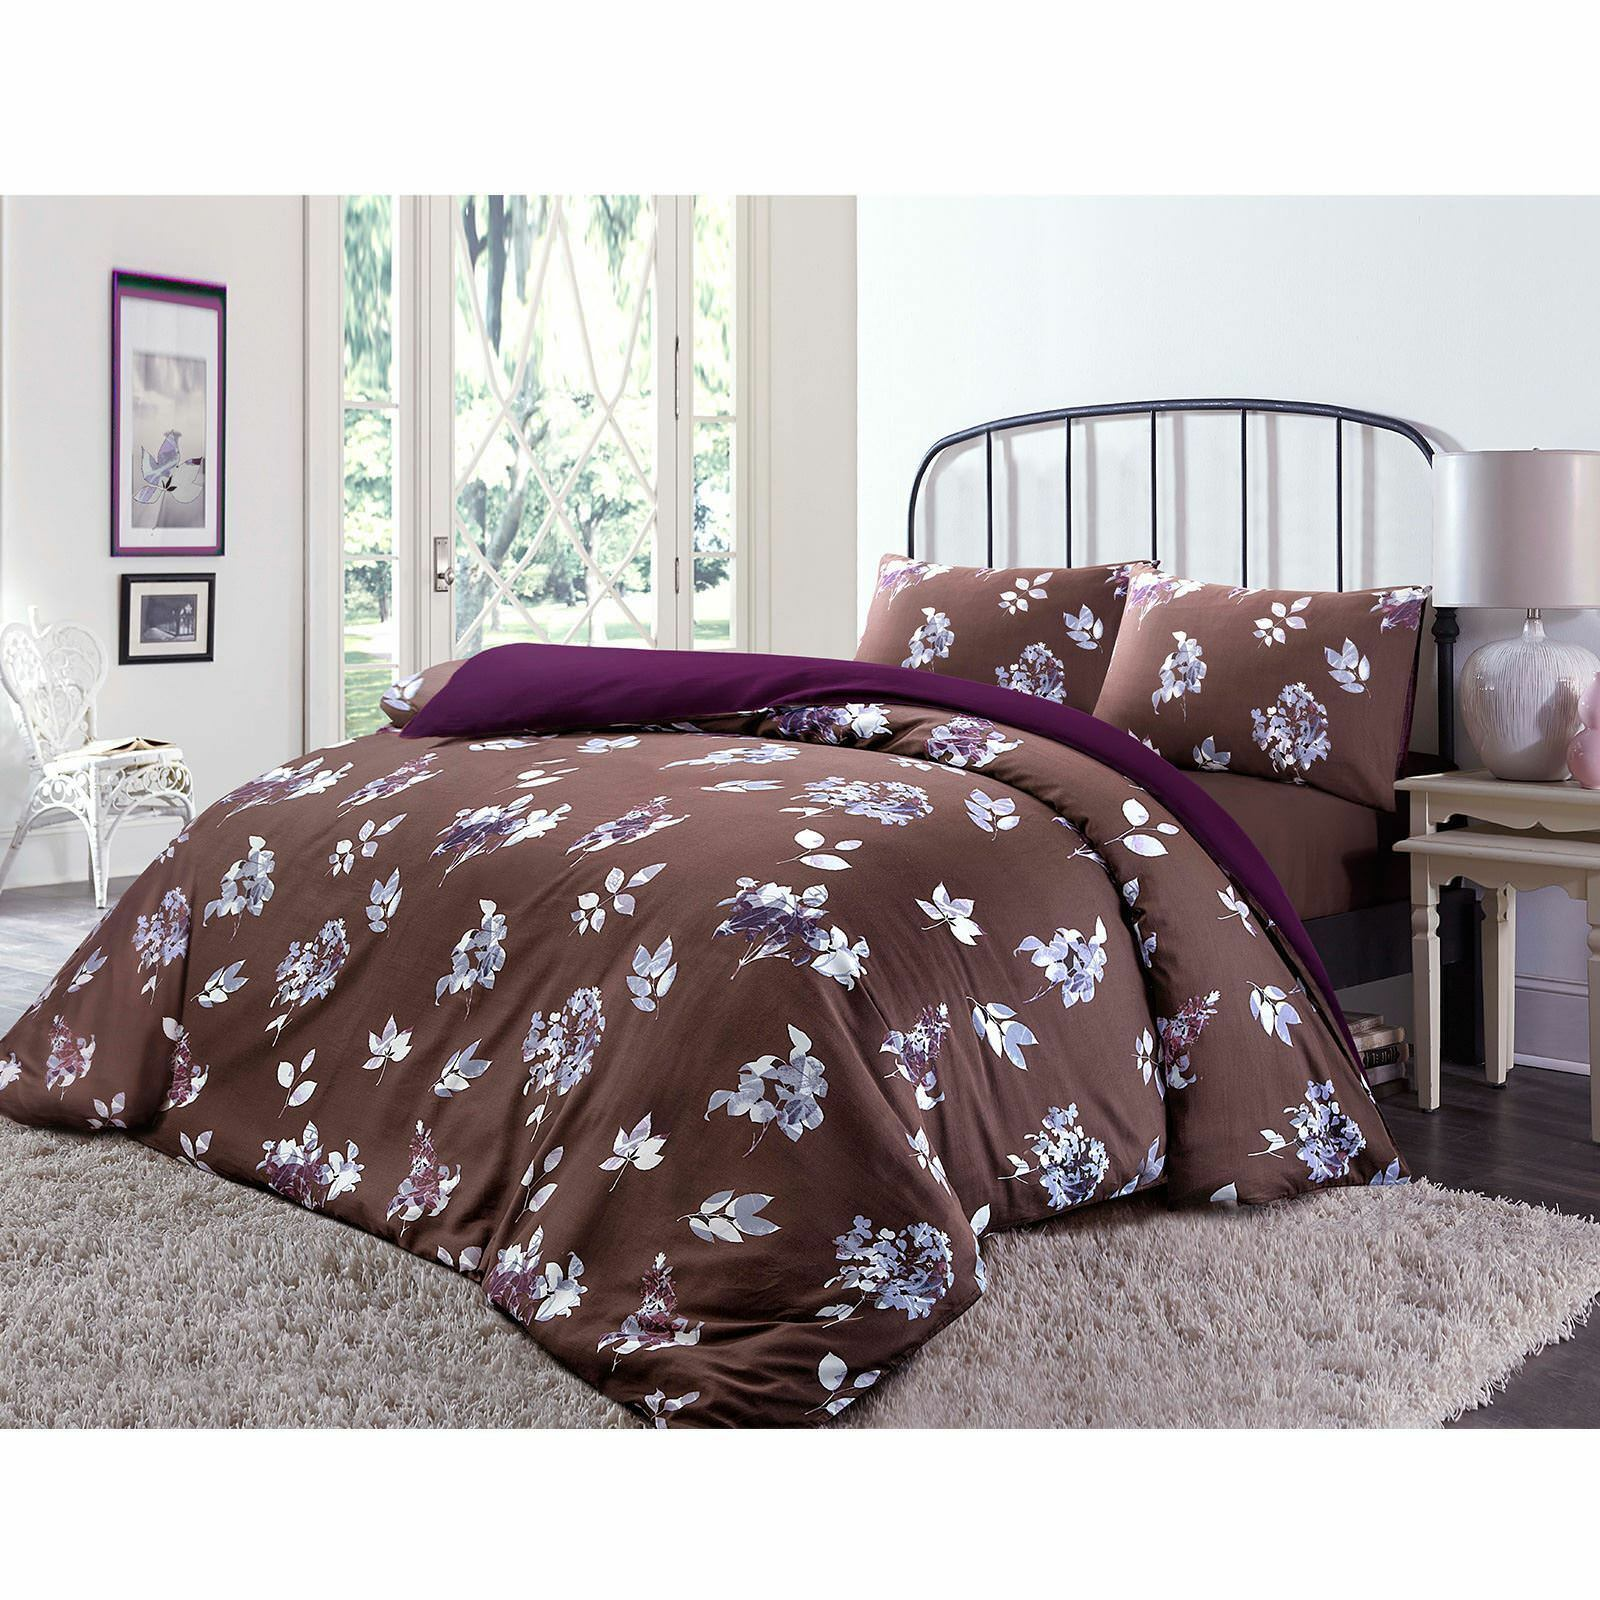 Shadow Floral T230 Duvet Cover Set + T200 Fitted Sheet Plum